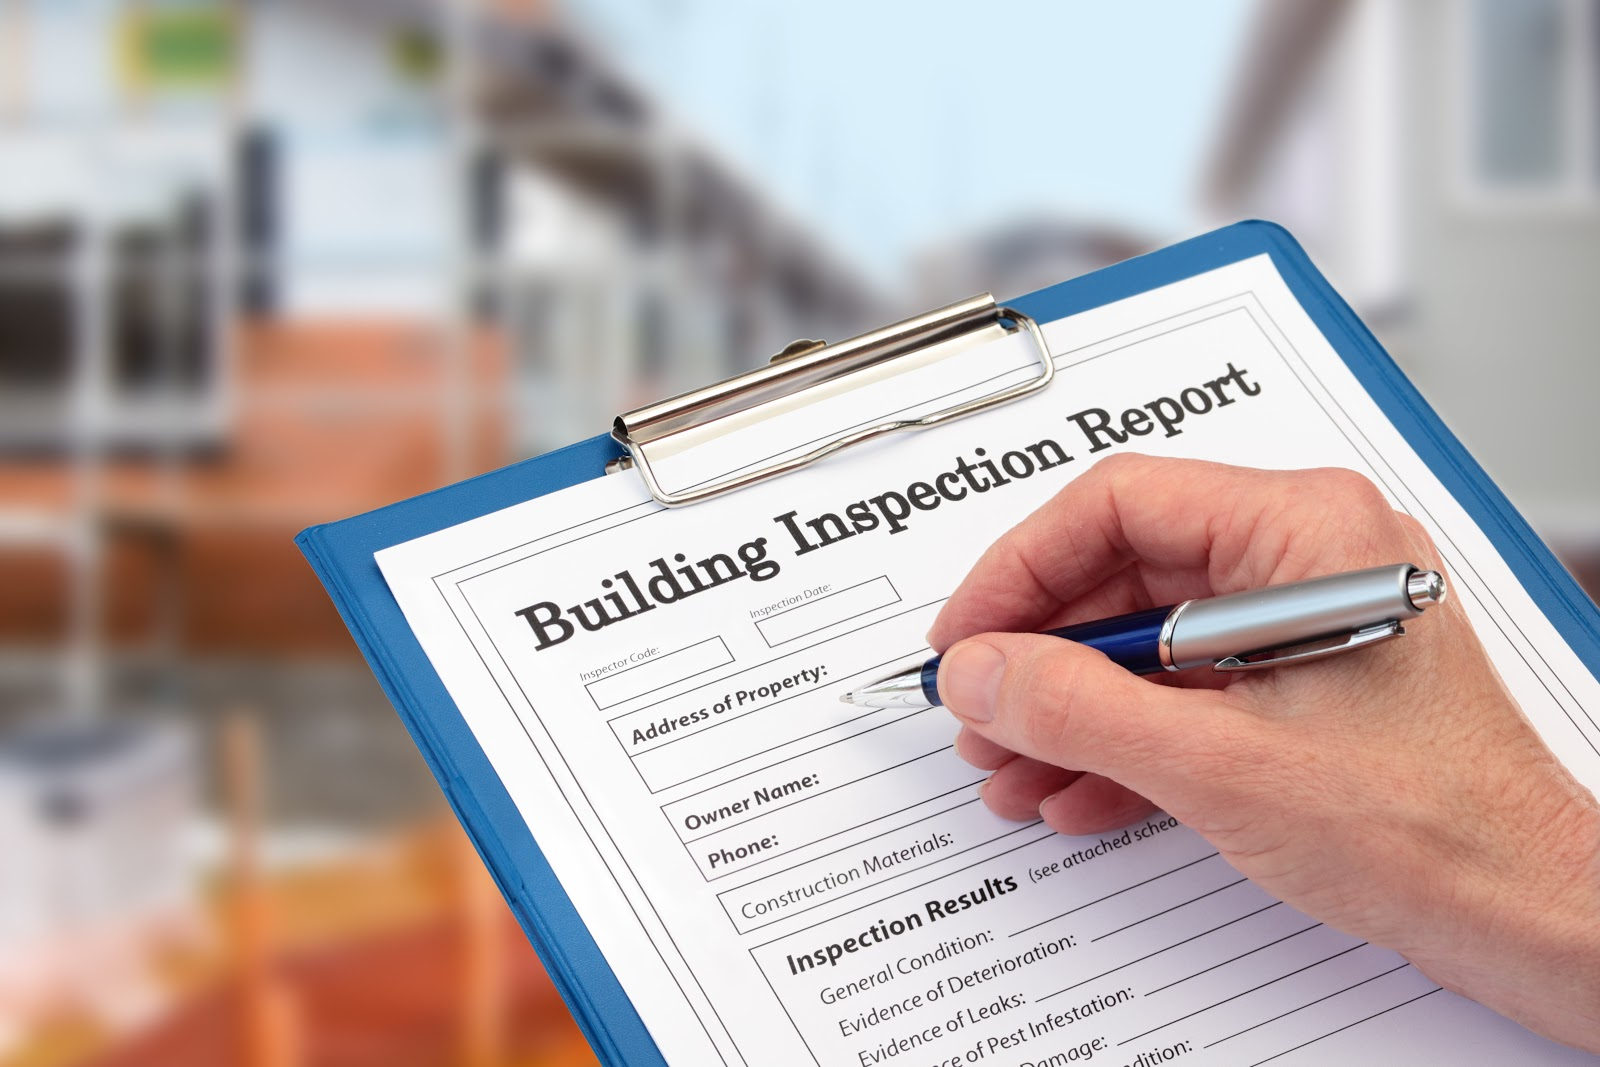 building inspection for building permit